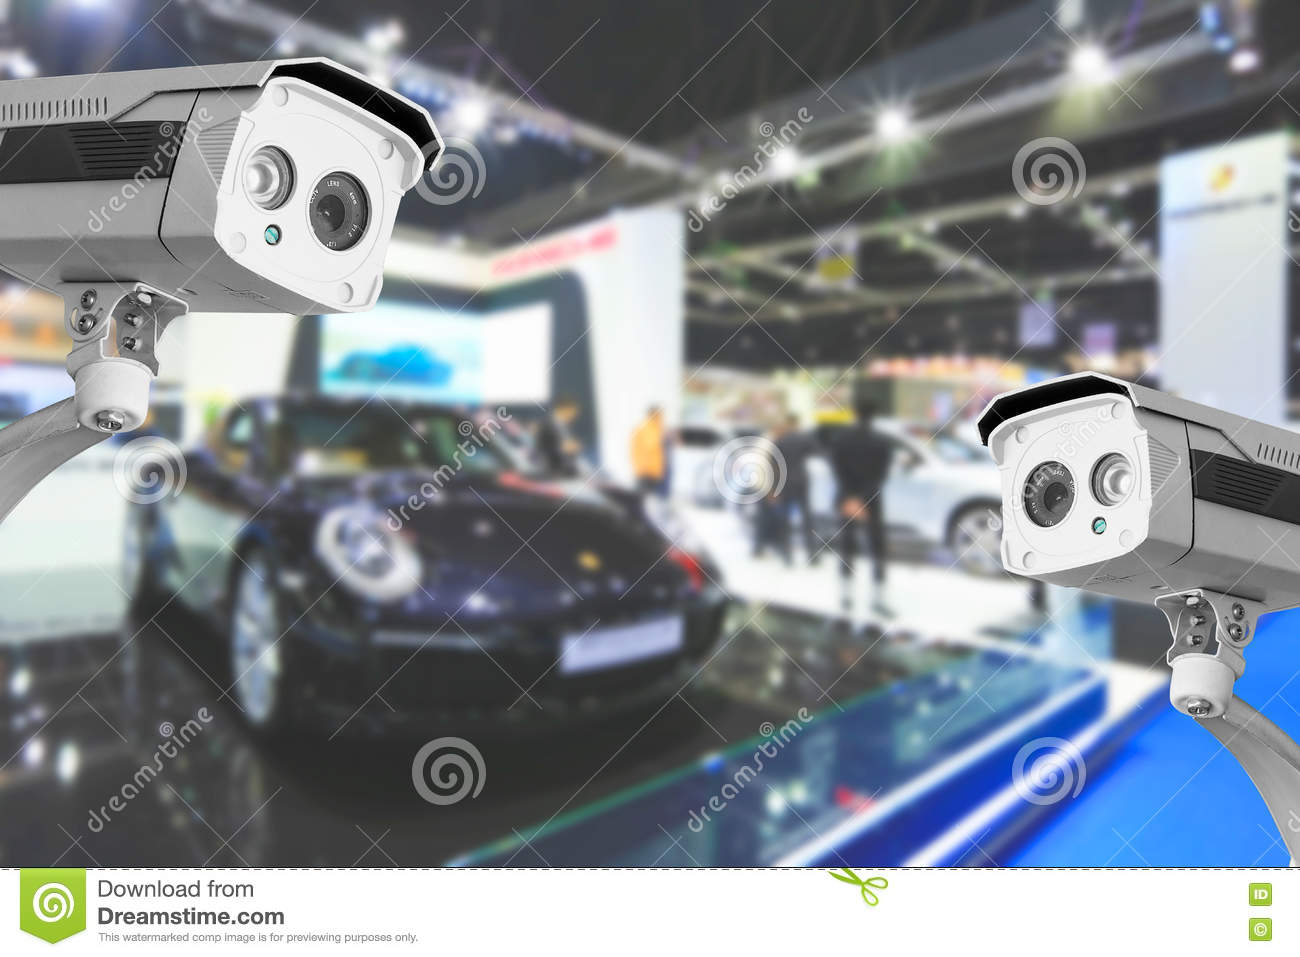 CCTV camera of commercial cars in show room.